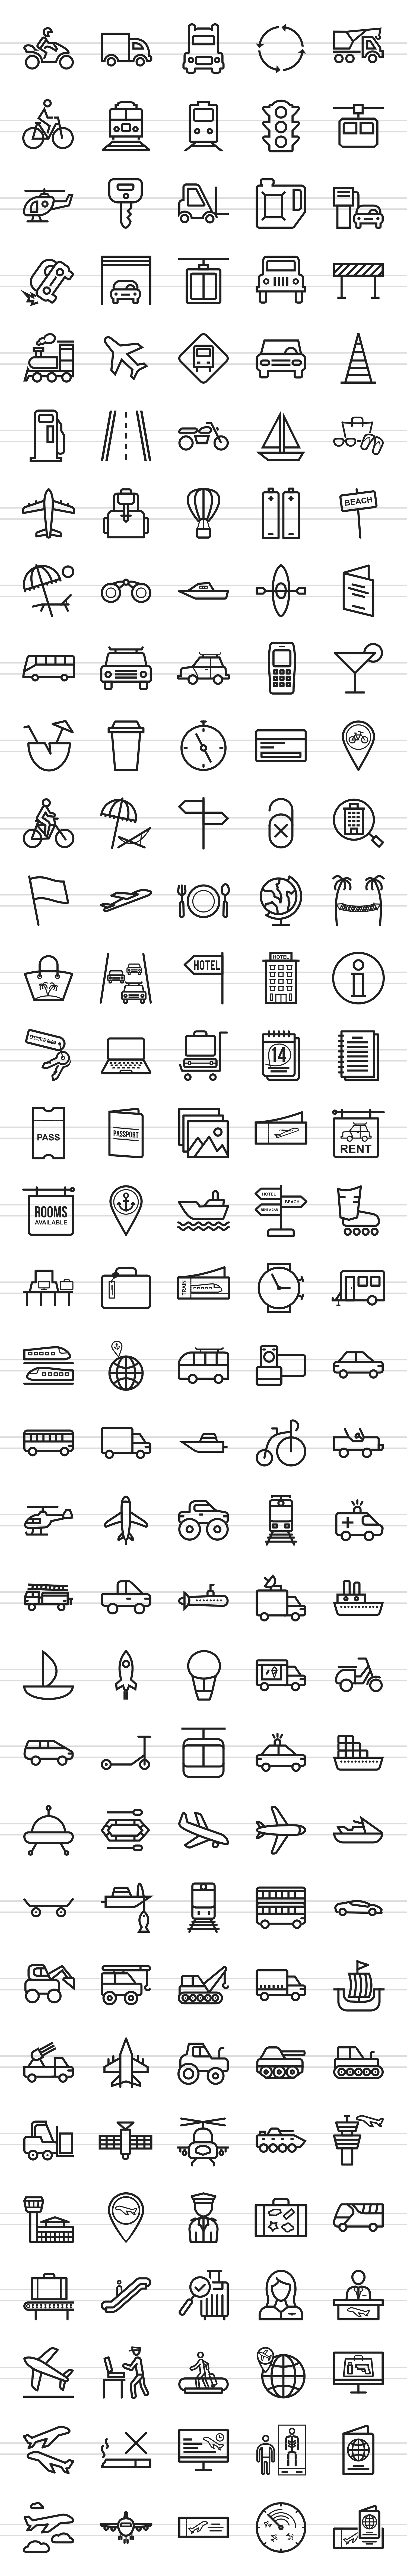 166 Transport Line Icons example image 2